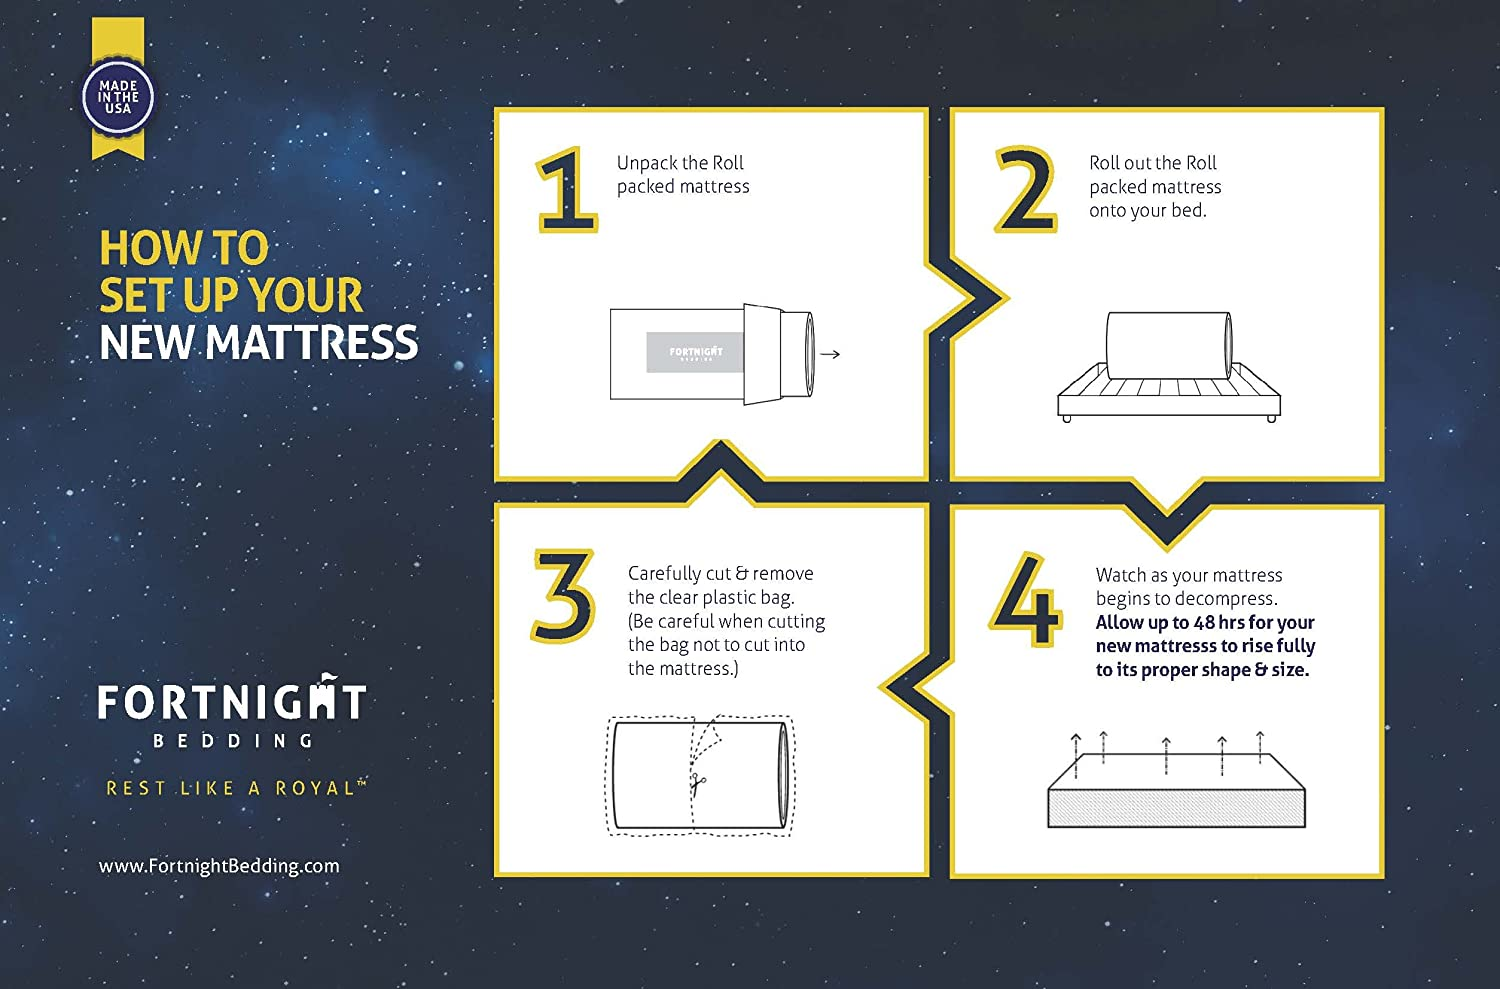 Fortnight Bedding 4 inch Foam Mattress with Durable Fabric Cover Twin Size Made in USA CertiPUR-US Certified